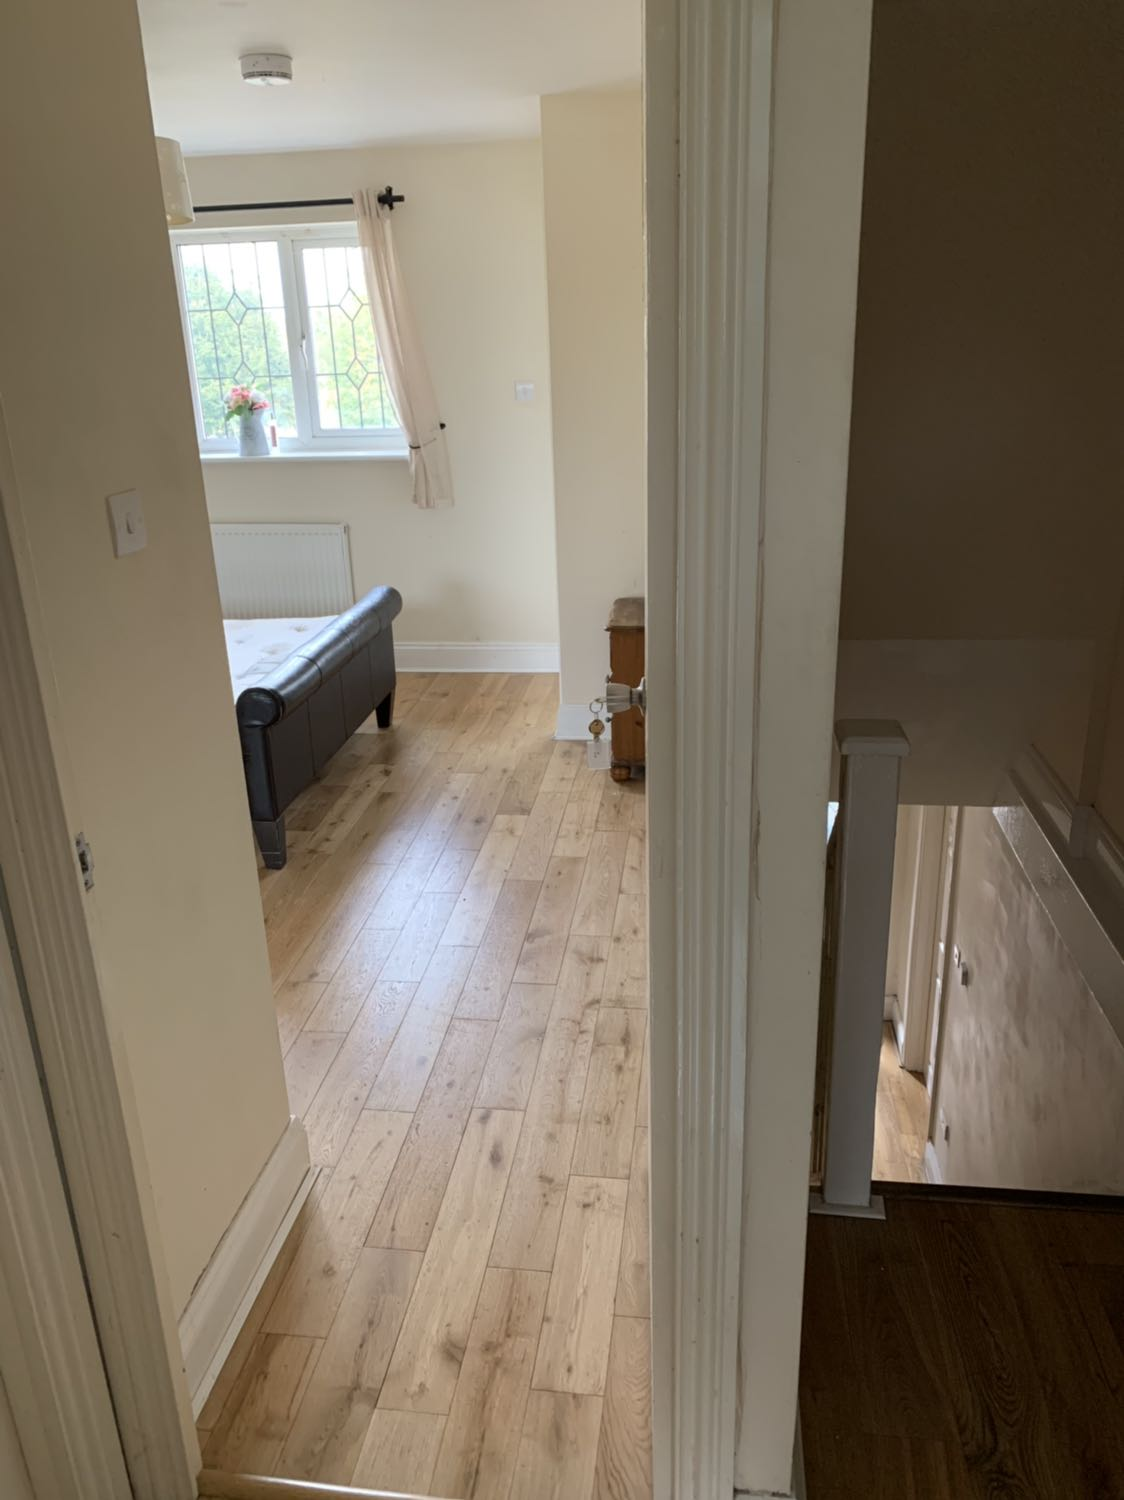 1 room in Kempshott, Basingstoke, RG224QU RoomsLocal image